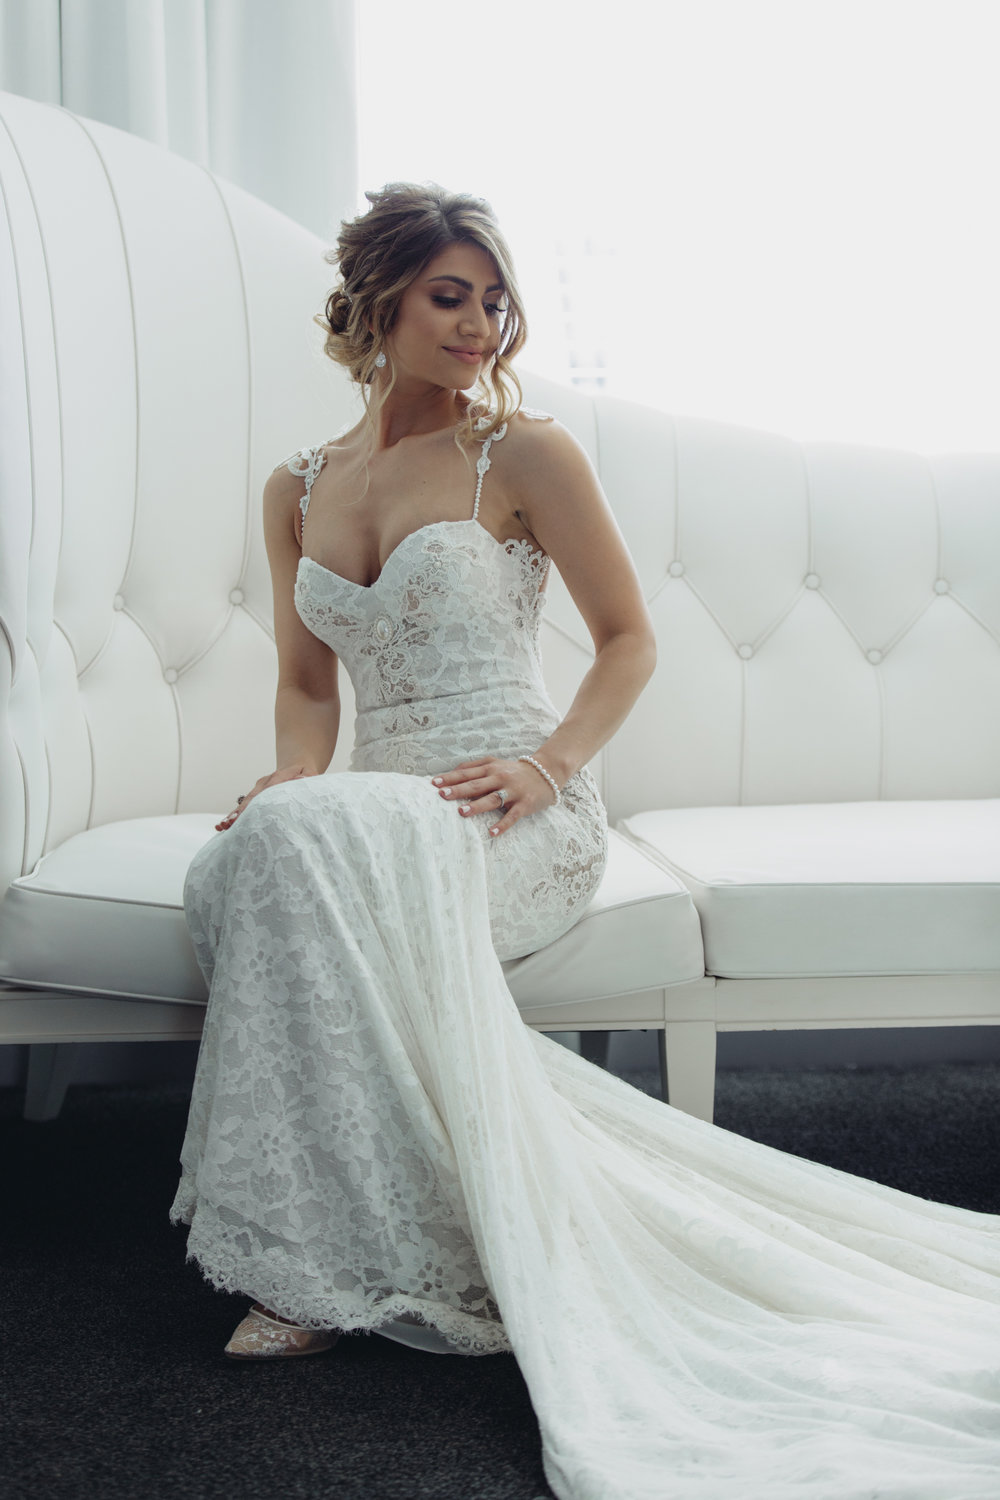 Lace Berta Wedding Gown.  Luxury Destination Wedding Planning and Event Design by  Andrea Eppolito Events  · Photos by  Stephen Salazar  ·